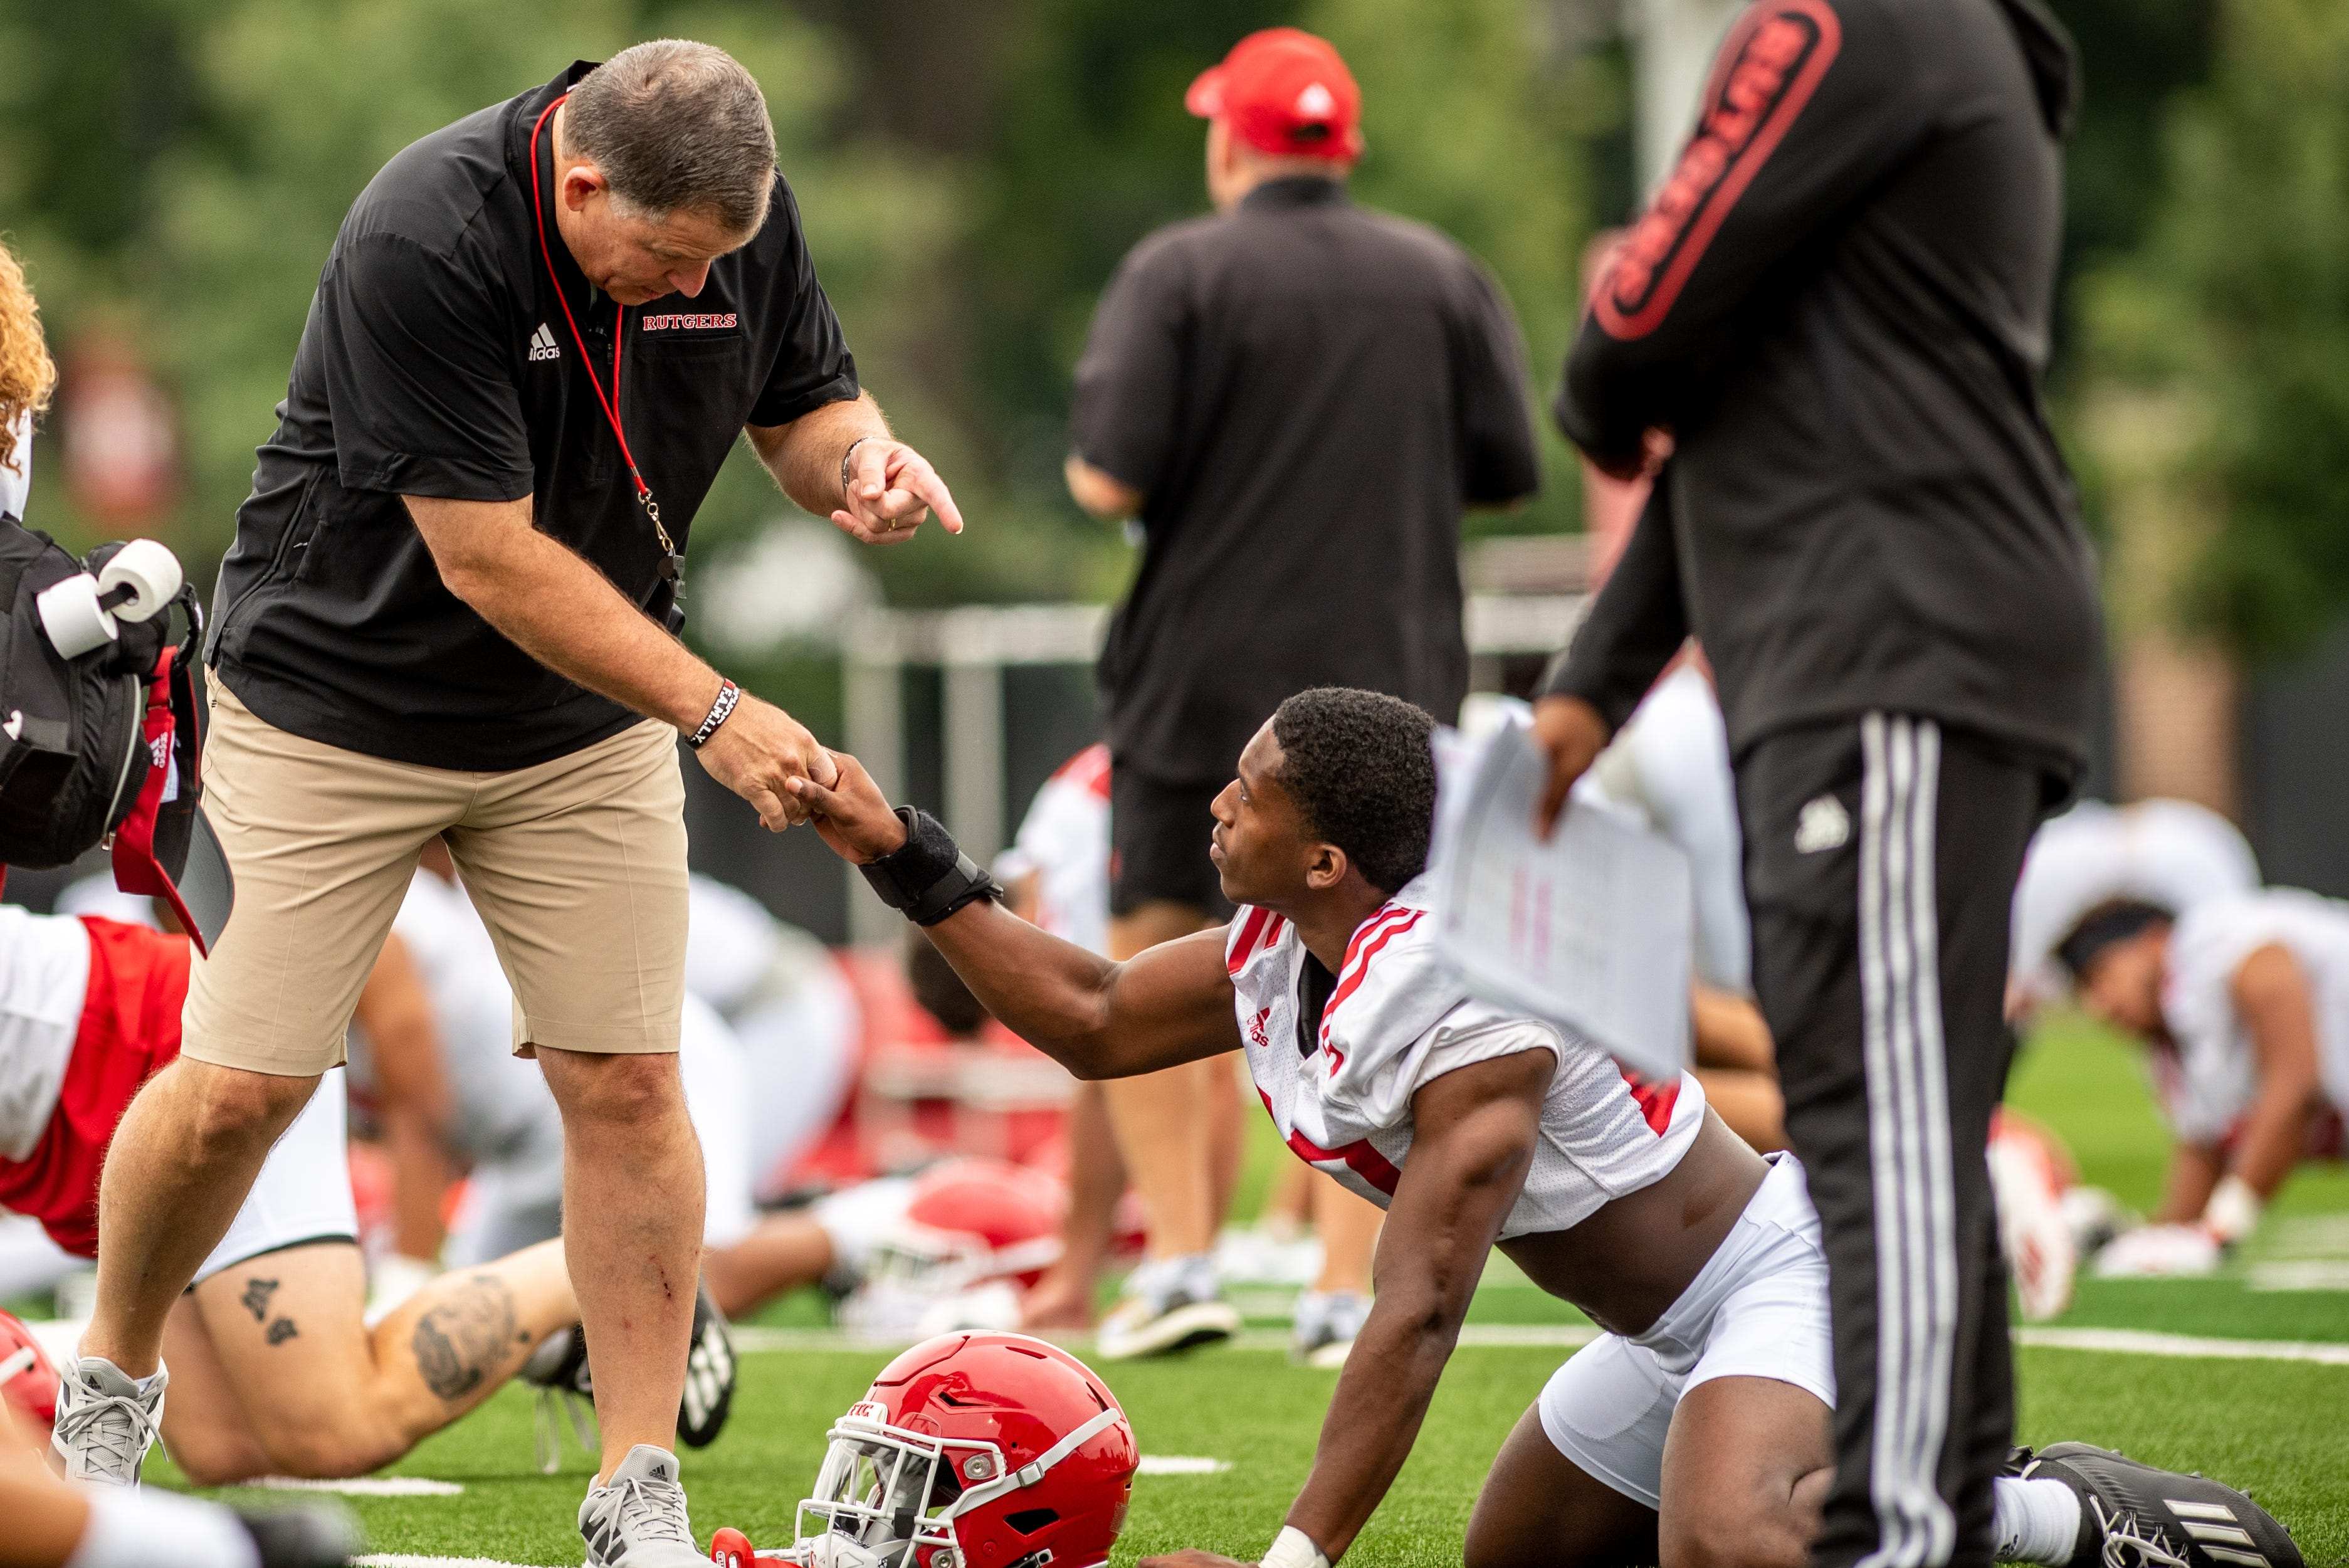 Rutgers football's first practice of training camp is held In Piscataway on Wednesday August 4, 2021. Head coach Greg Schiano shakes a player's hand during practice.